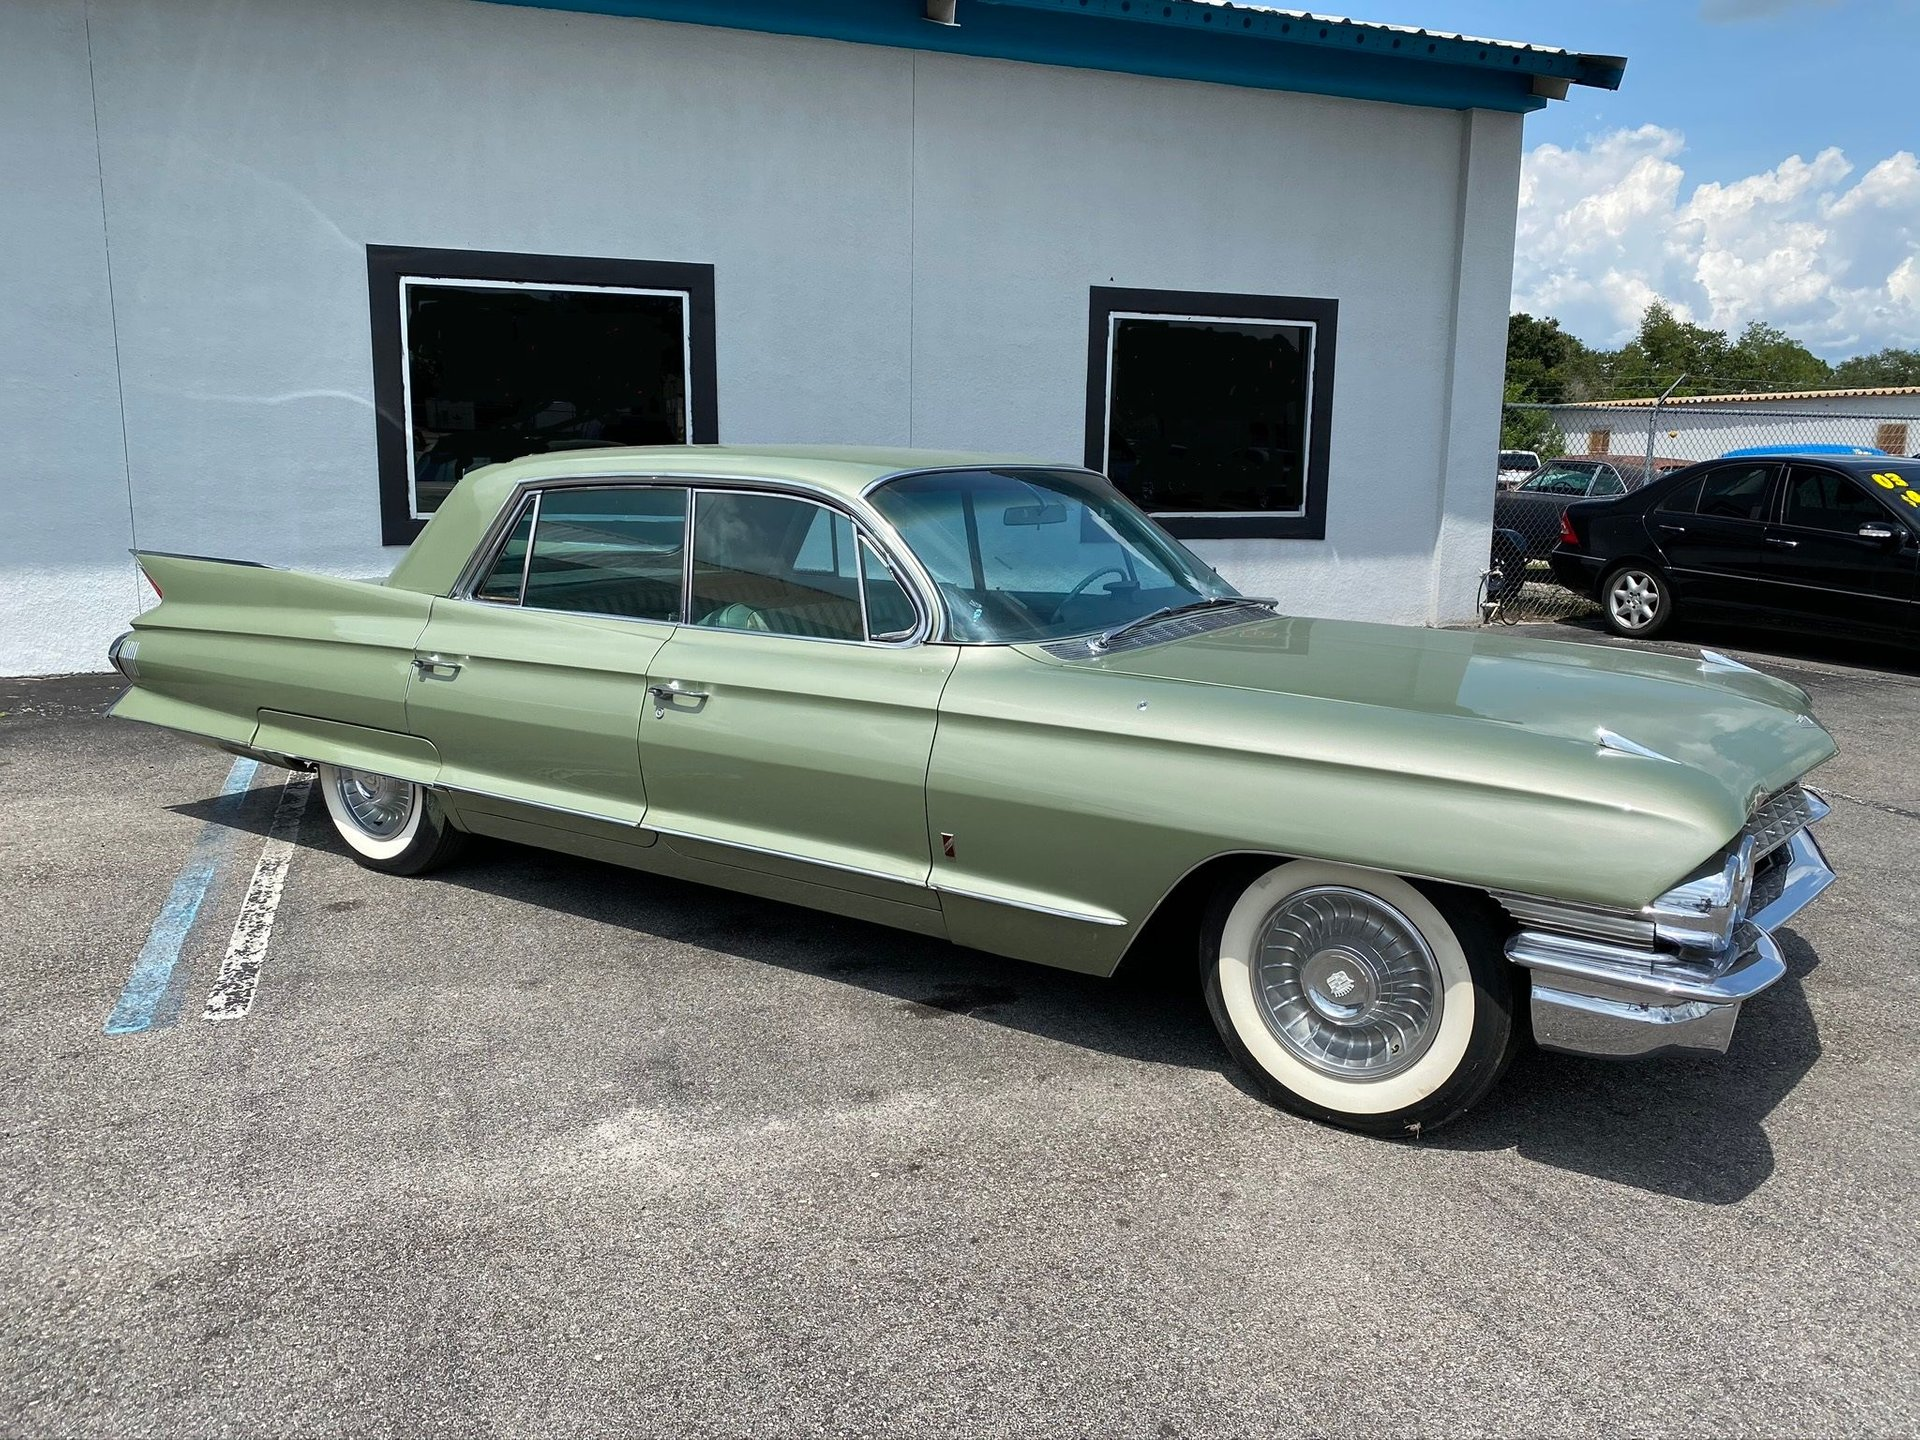 1961 cadillac fleetwood four door hardtop